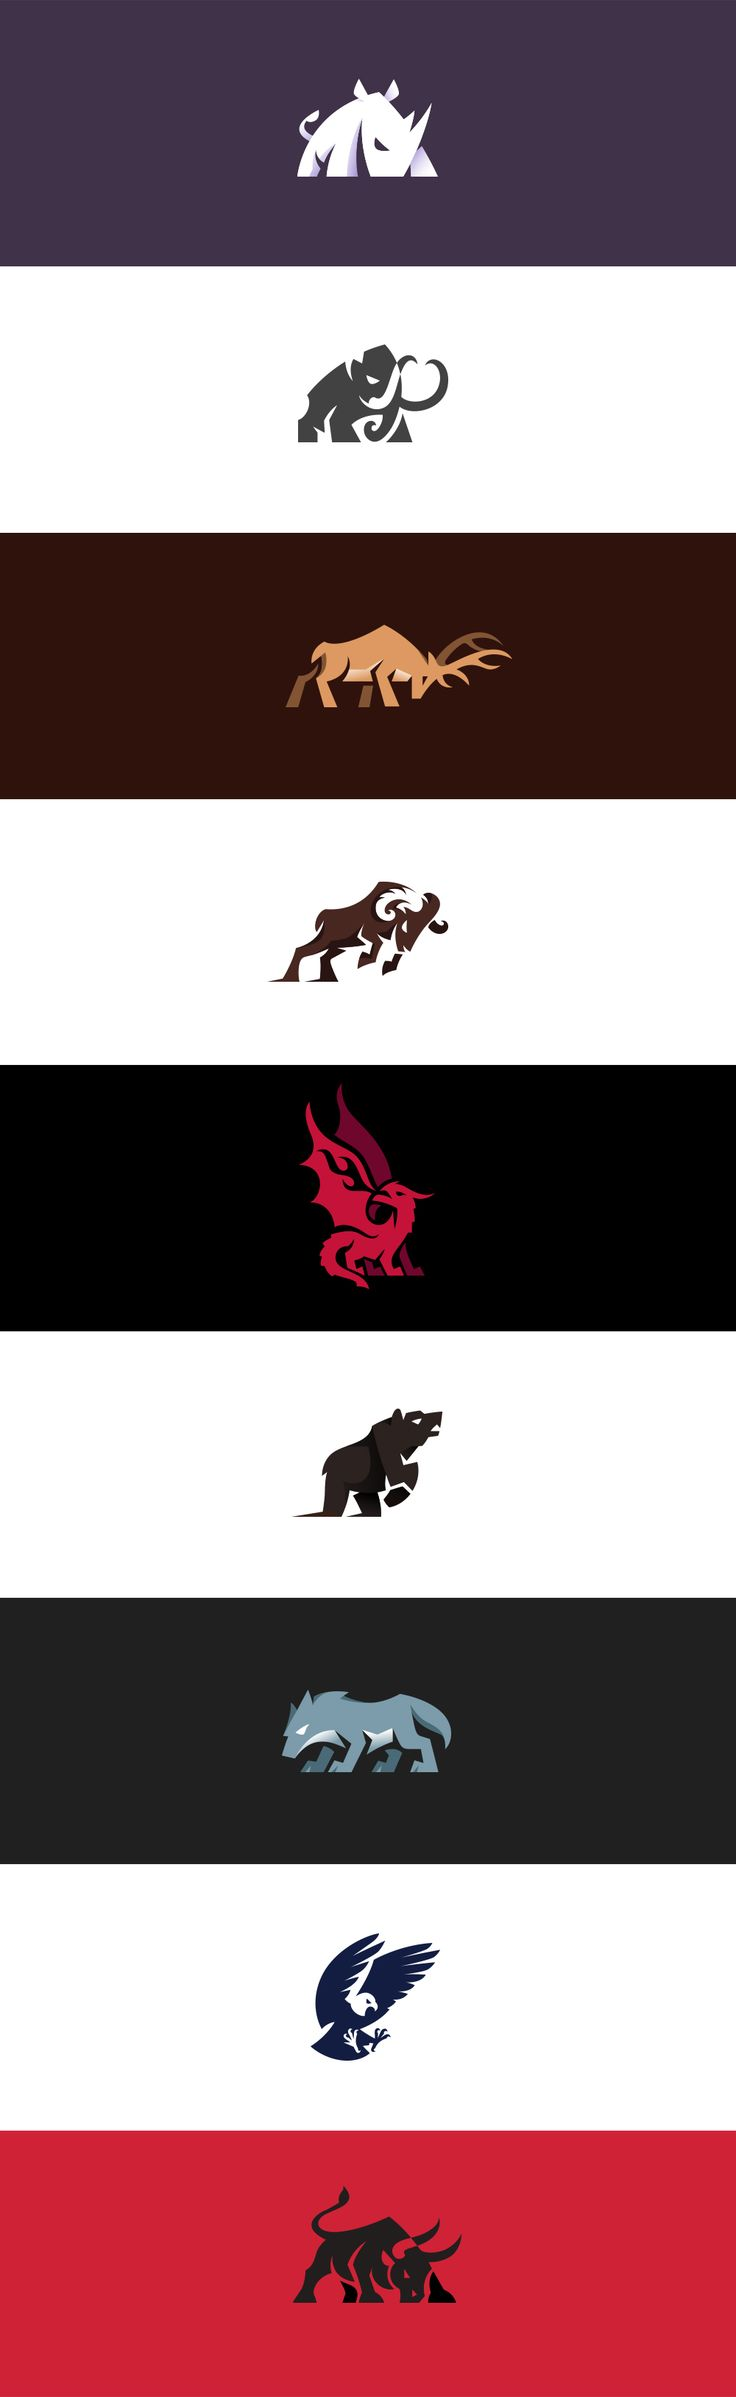 Aggressive and charging animal logos I made.